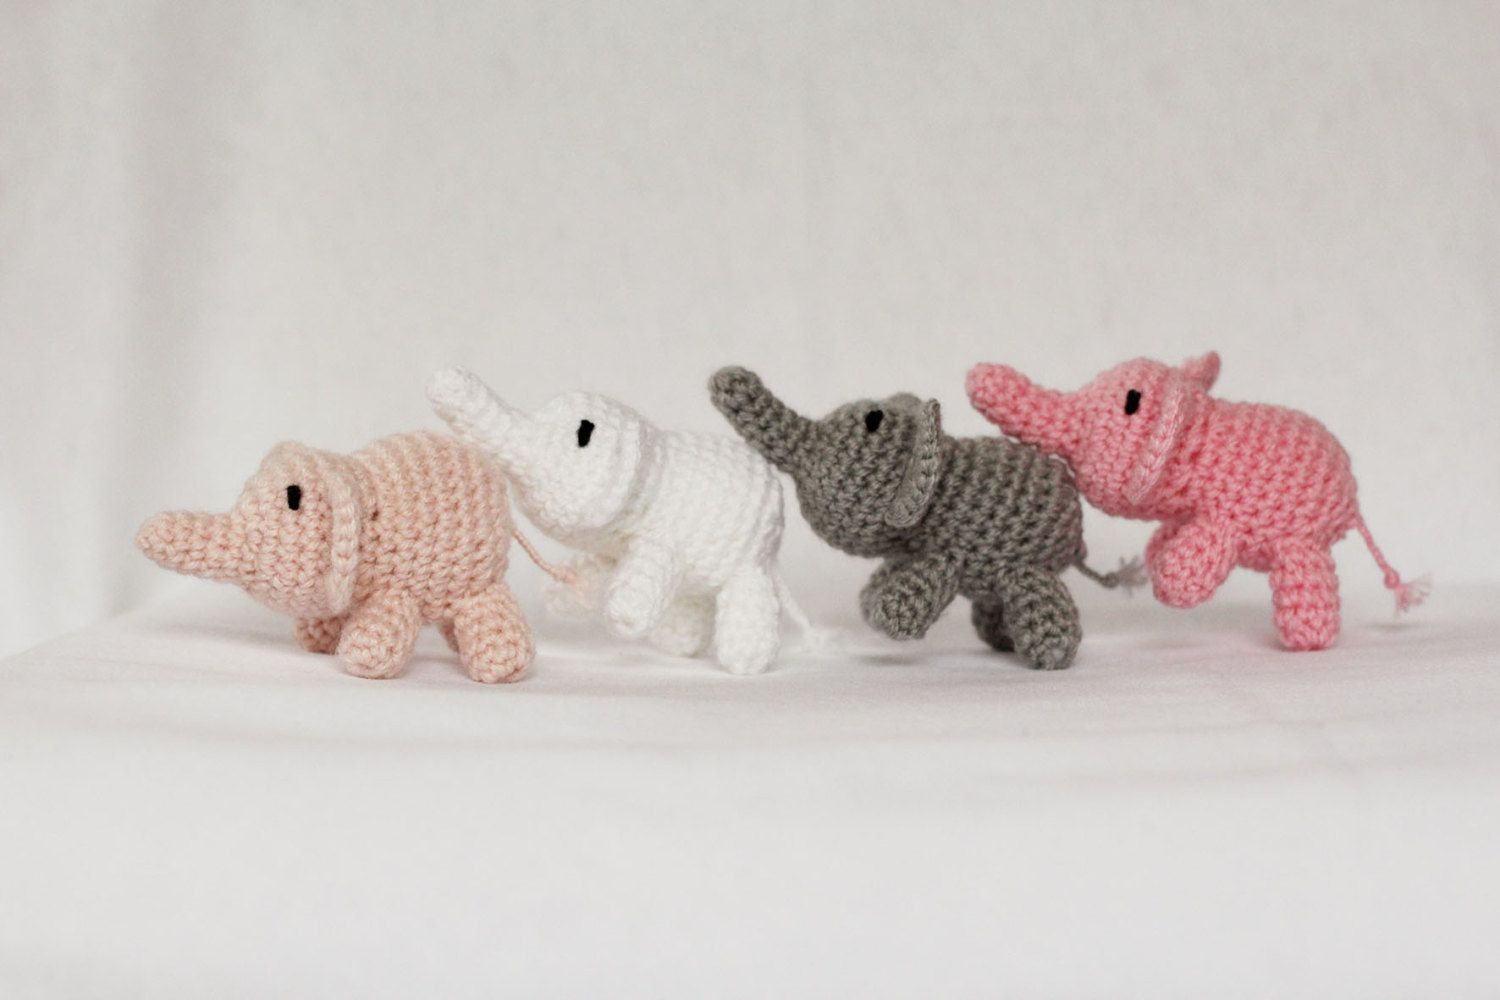 Crochet Elephant Amigurumi Free Pattern with Video | Crochet baby ... | 1000x1500